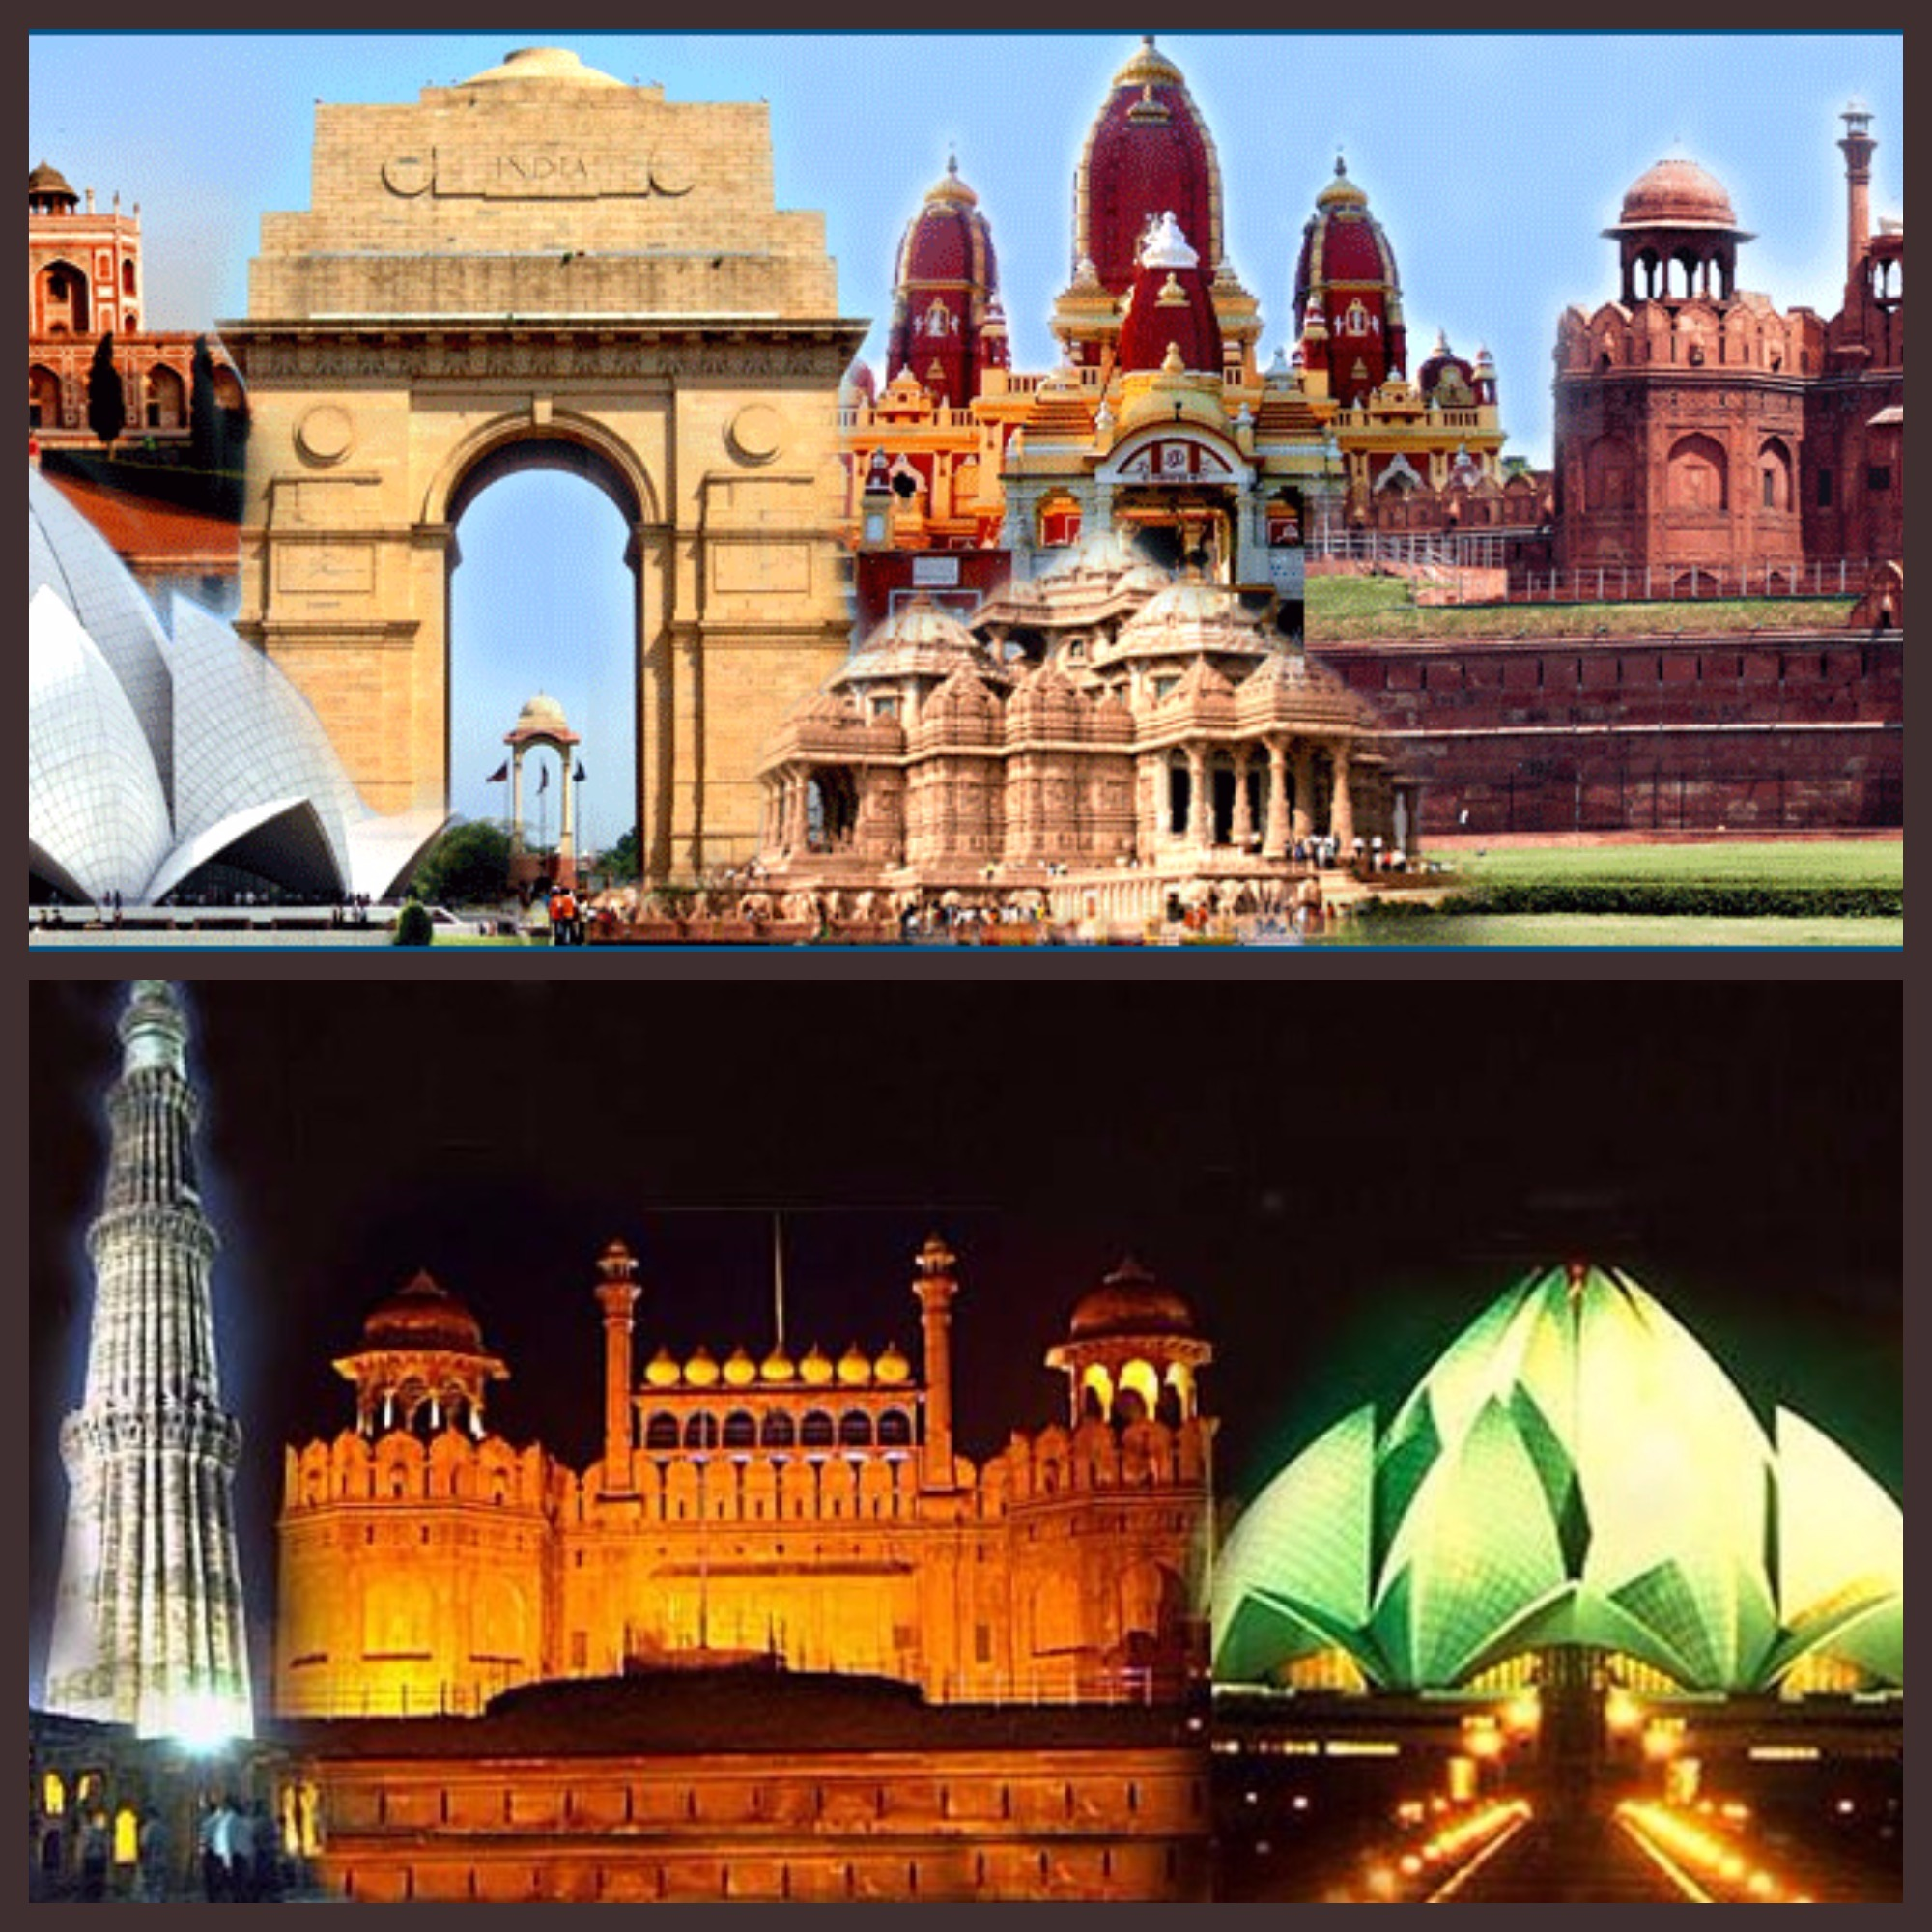 TRAVEL TO THE 'SOULFUL' CITY OF DELHI IN INDIA